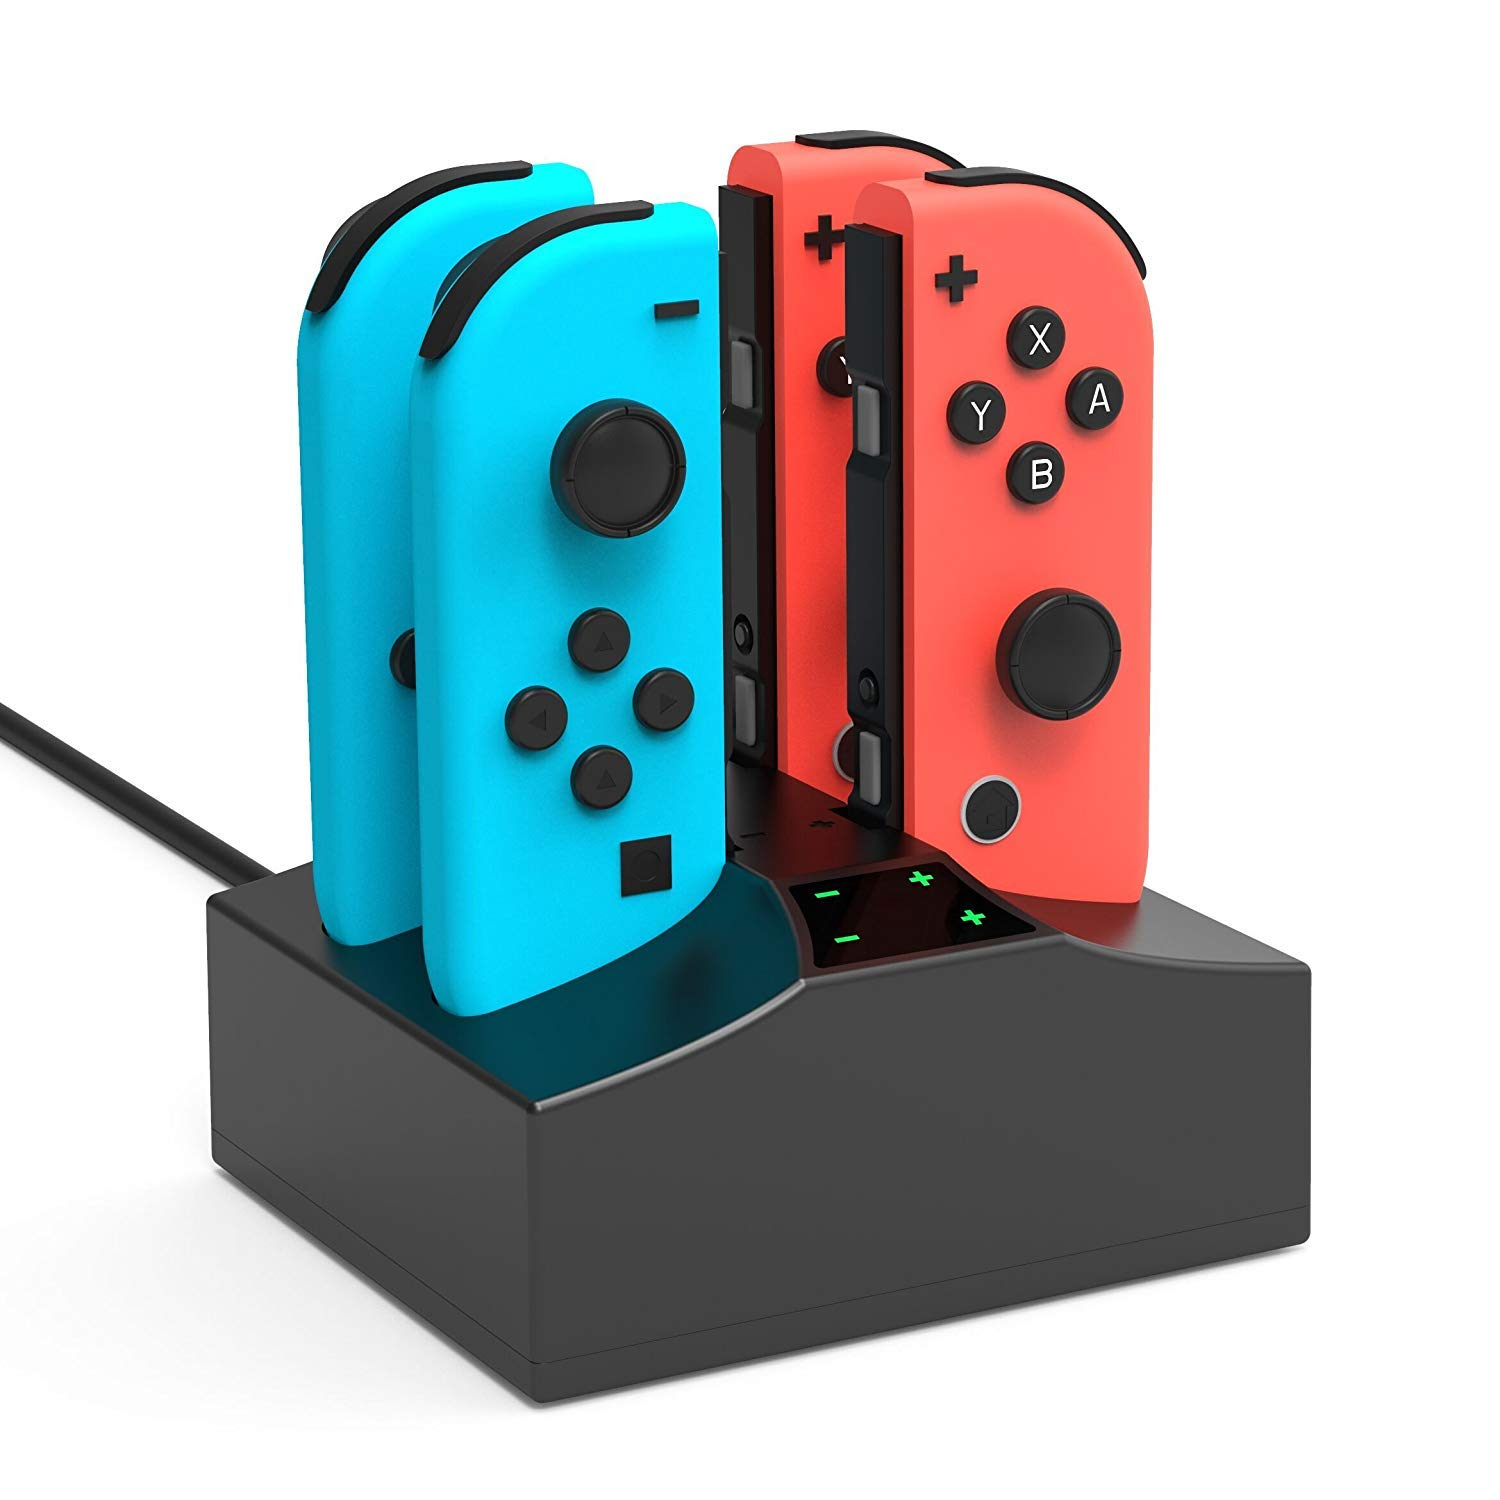 Joy-Con Charger Dock for Nintendo Switch,4 in 1 Joy-Con Fast Charging Station Stand with LED Indication and USB Type C Cable for Nintendo Switch Controller – Black